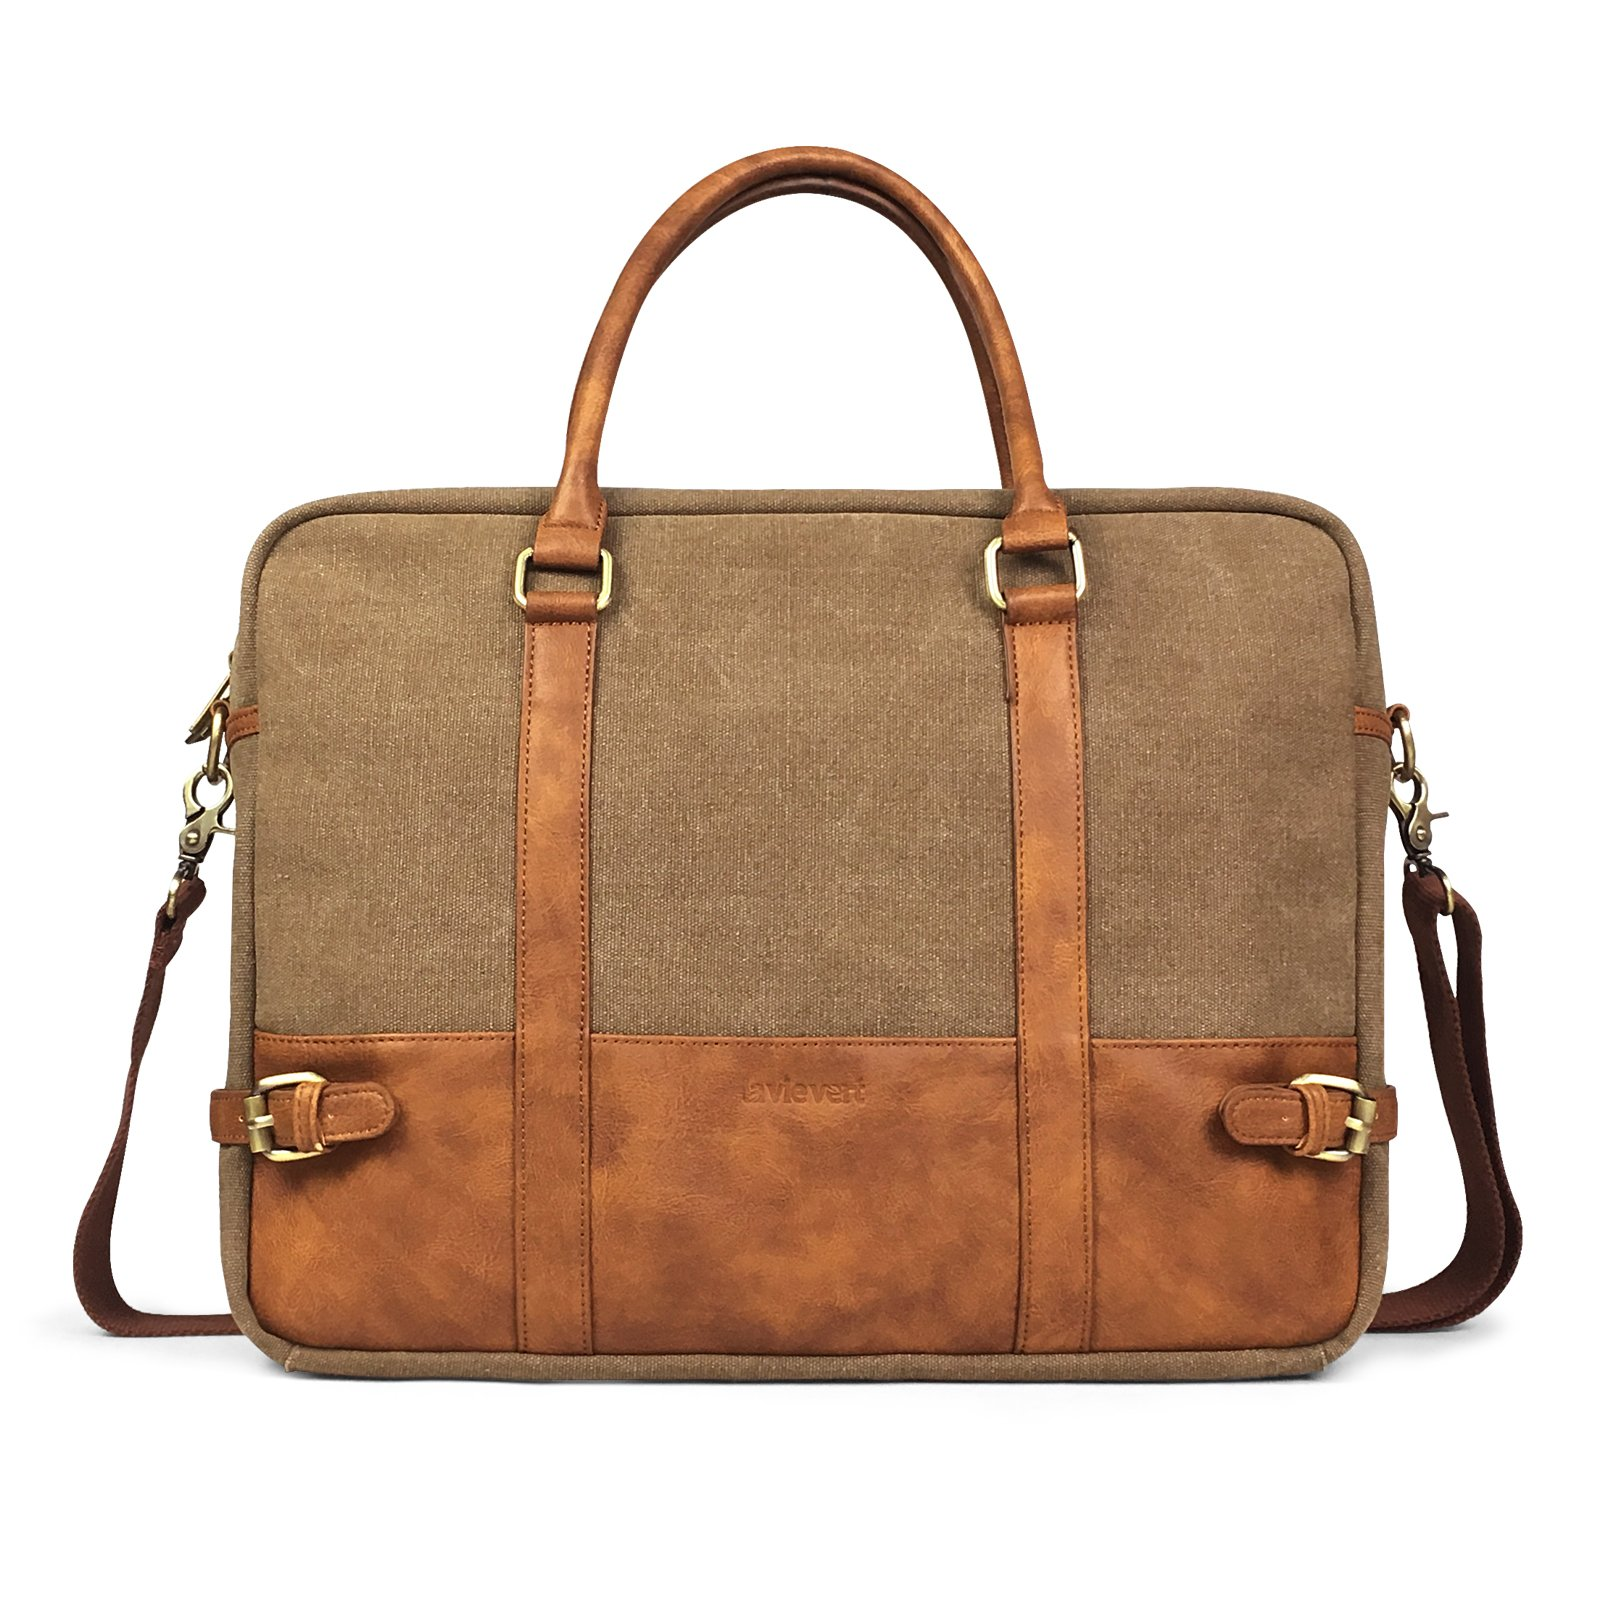 Lavievert Cotton Canvas and Crazy-Horse PU Leather Laptop Bag/Cross Body Shoulder Bag and Handbag 2 in 1 / Notebook Ultrabook Tablet Padded Case for Up to 15.6 Inch Laptop - Brown